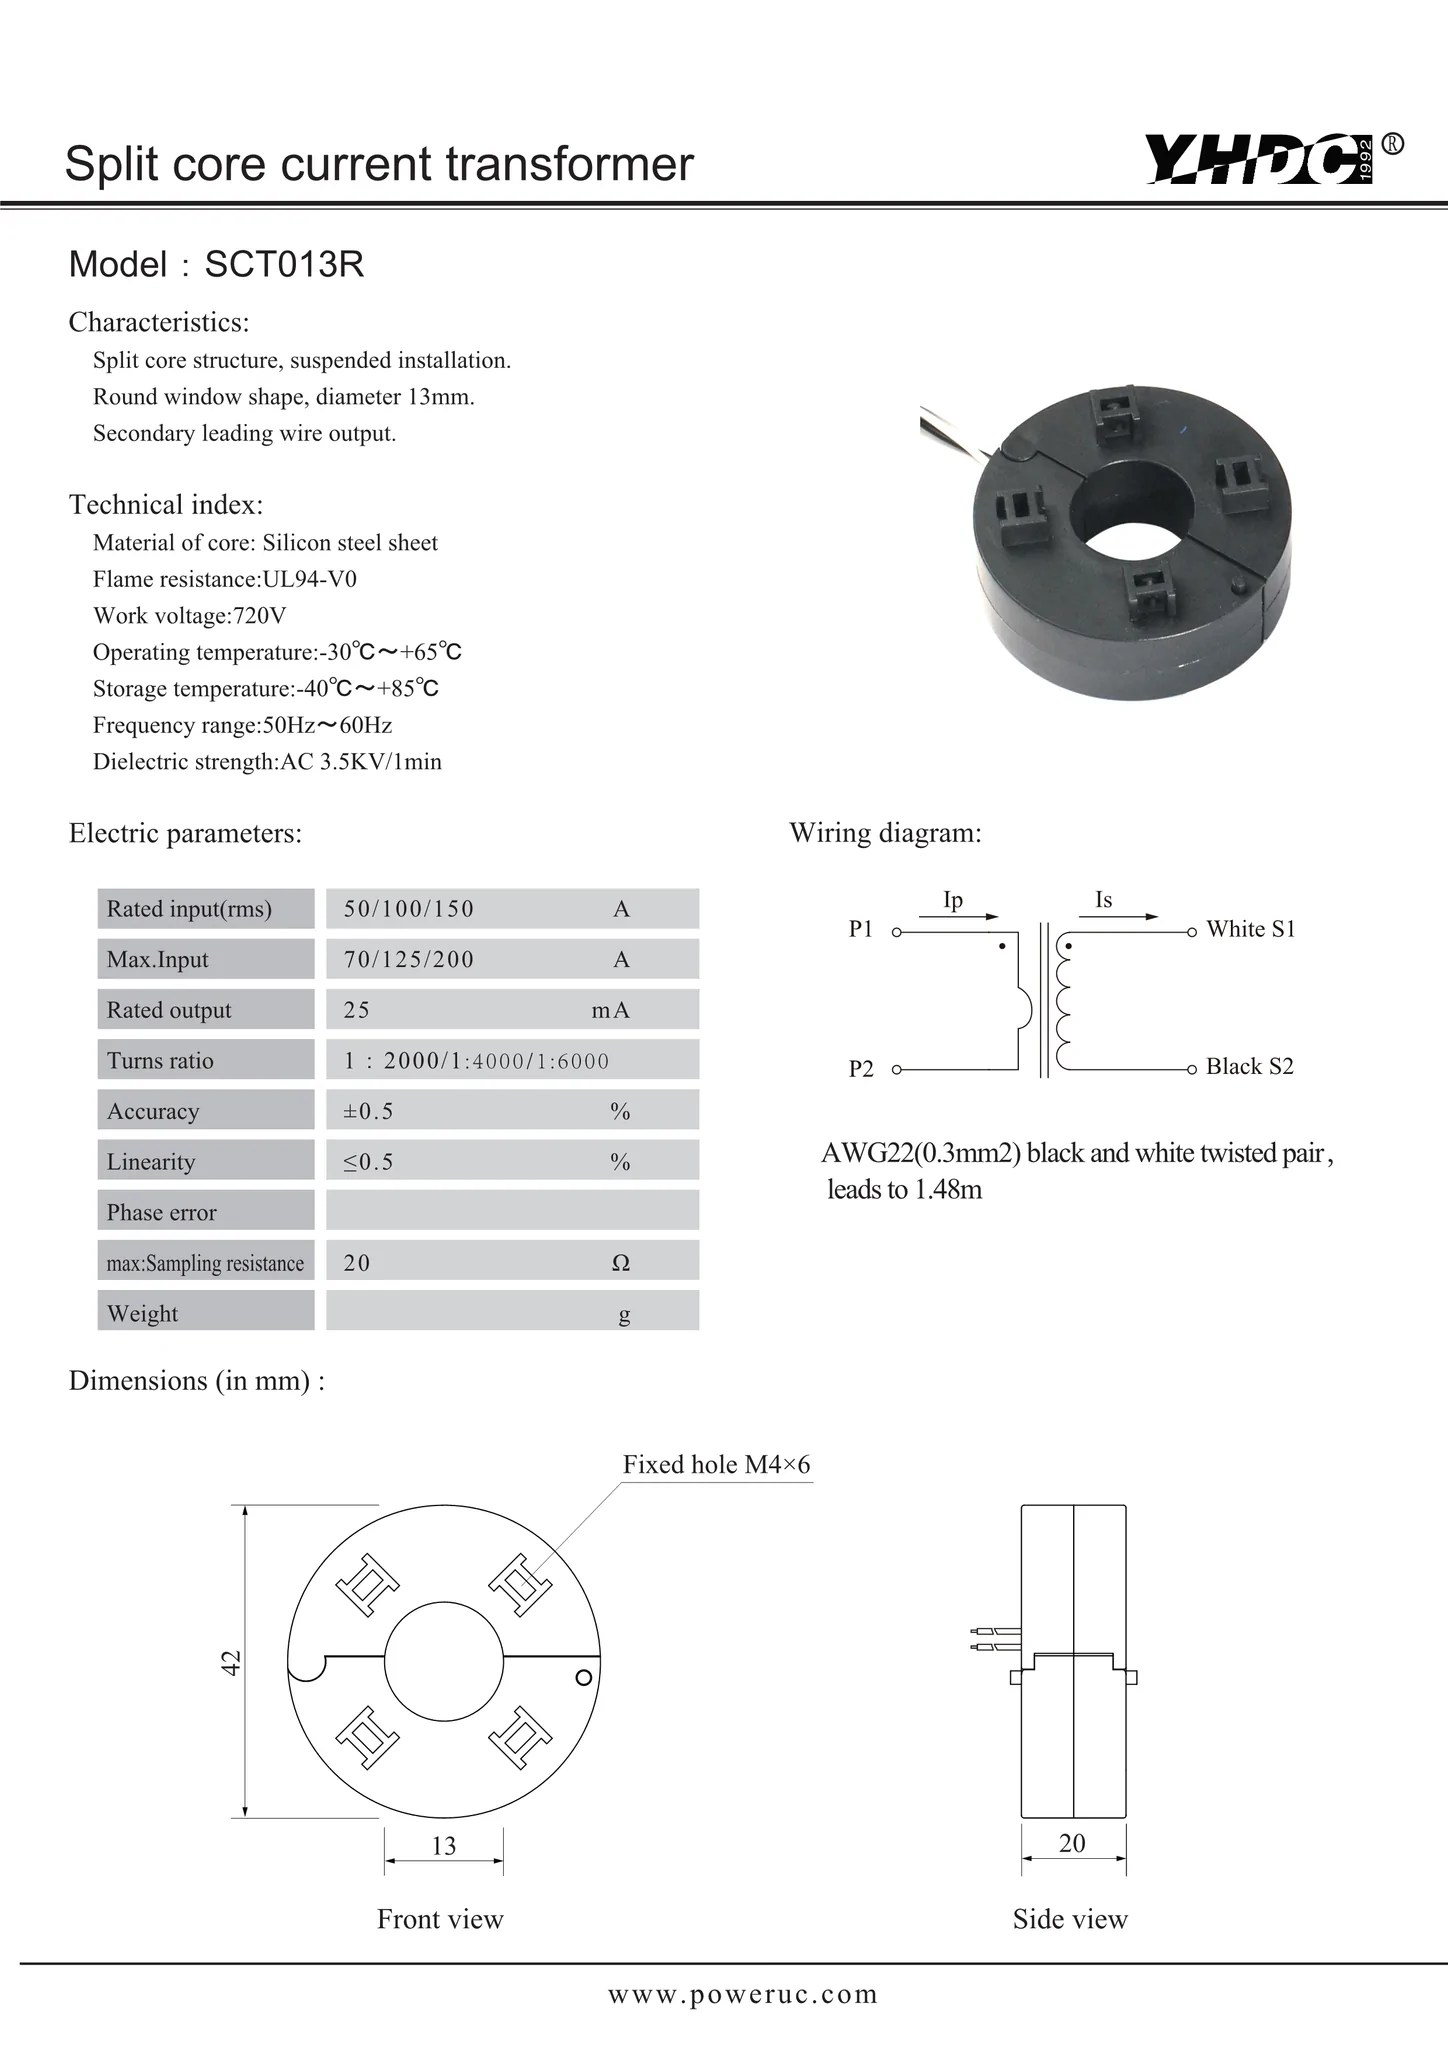 hight resolution of split core current transformer sct013r rated input 50a 100a 150a rated output 25ma